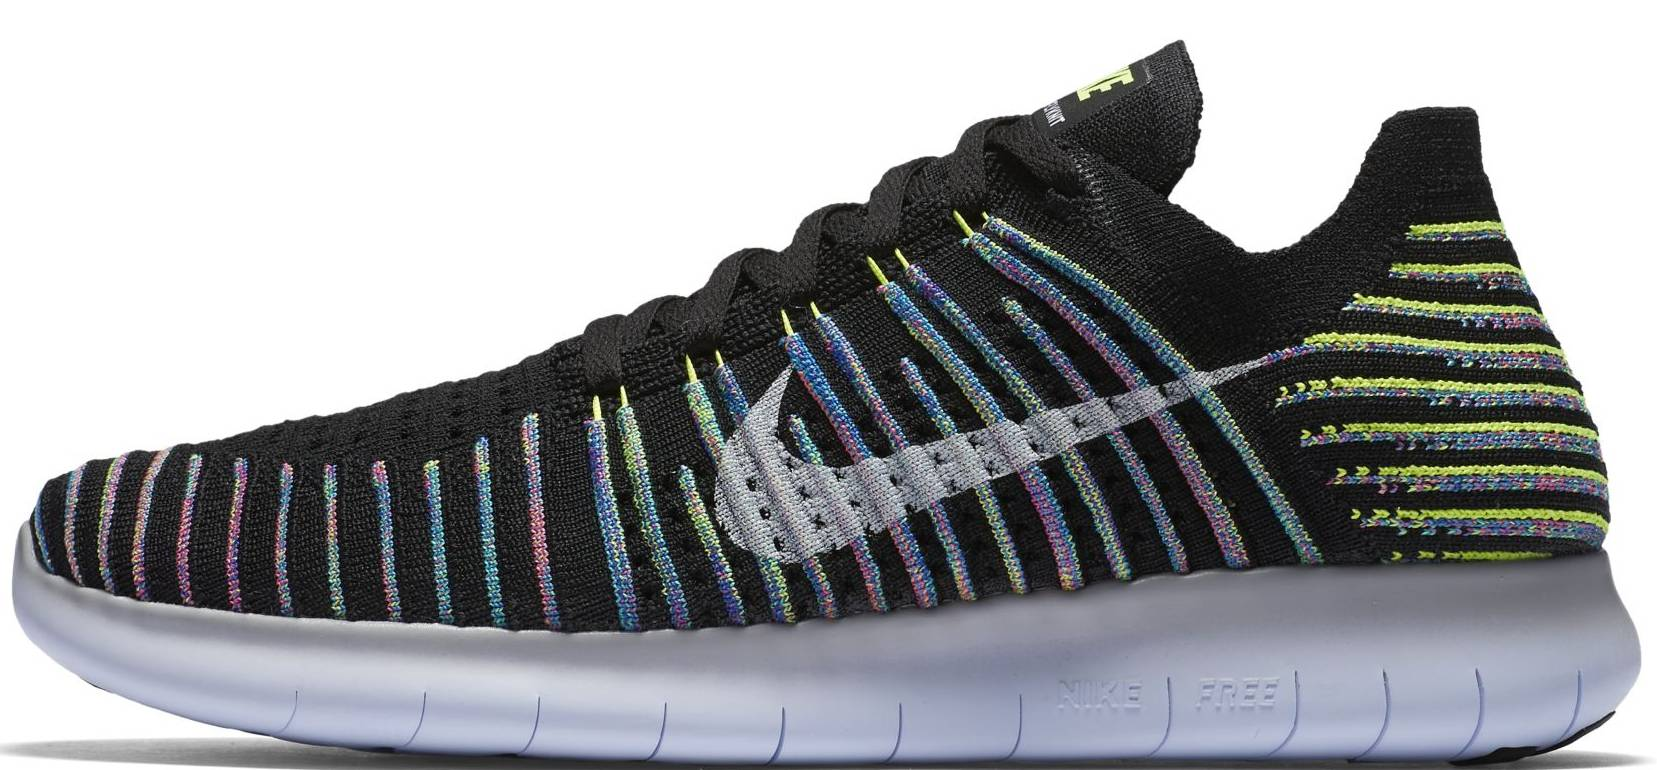 Nike Free RN Flyknit - Deals ($79), Facts, Reviews (2021)   RunRepeat